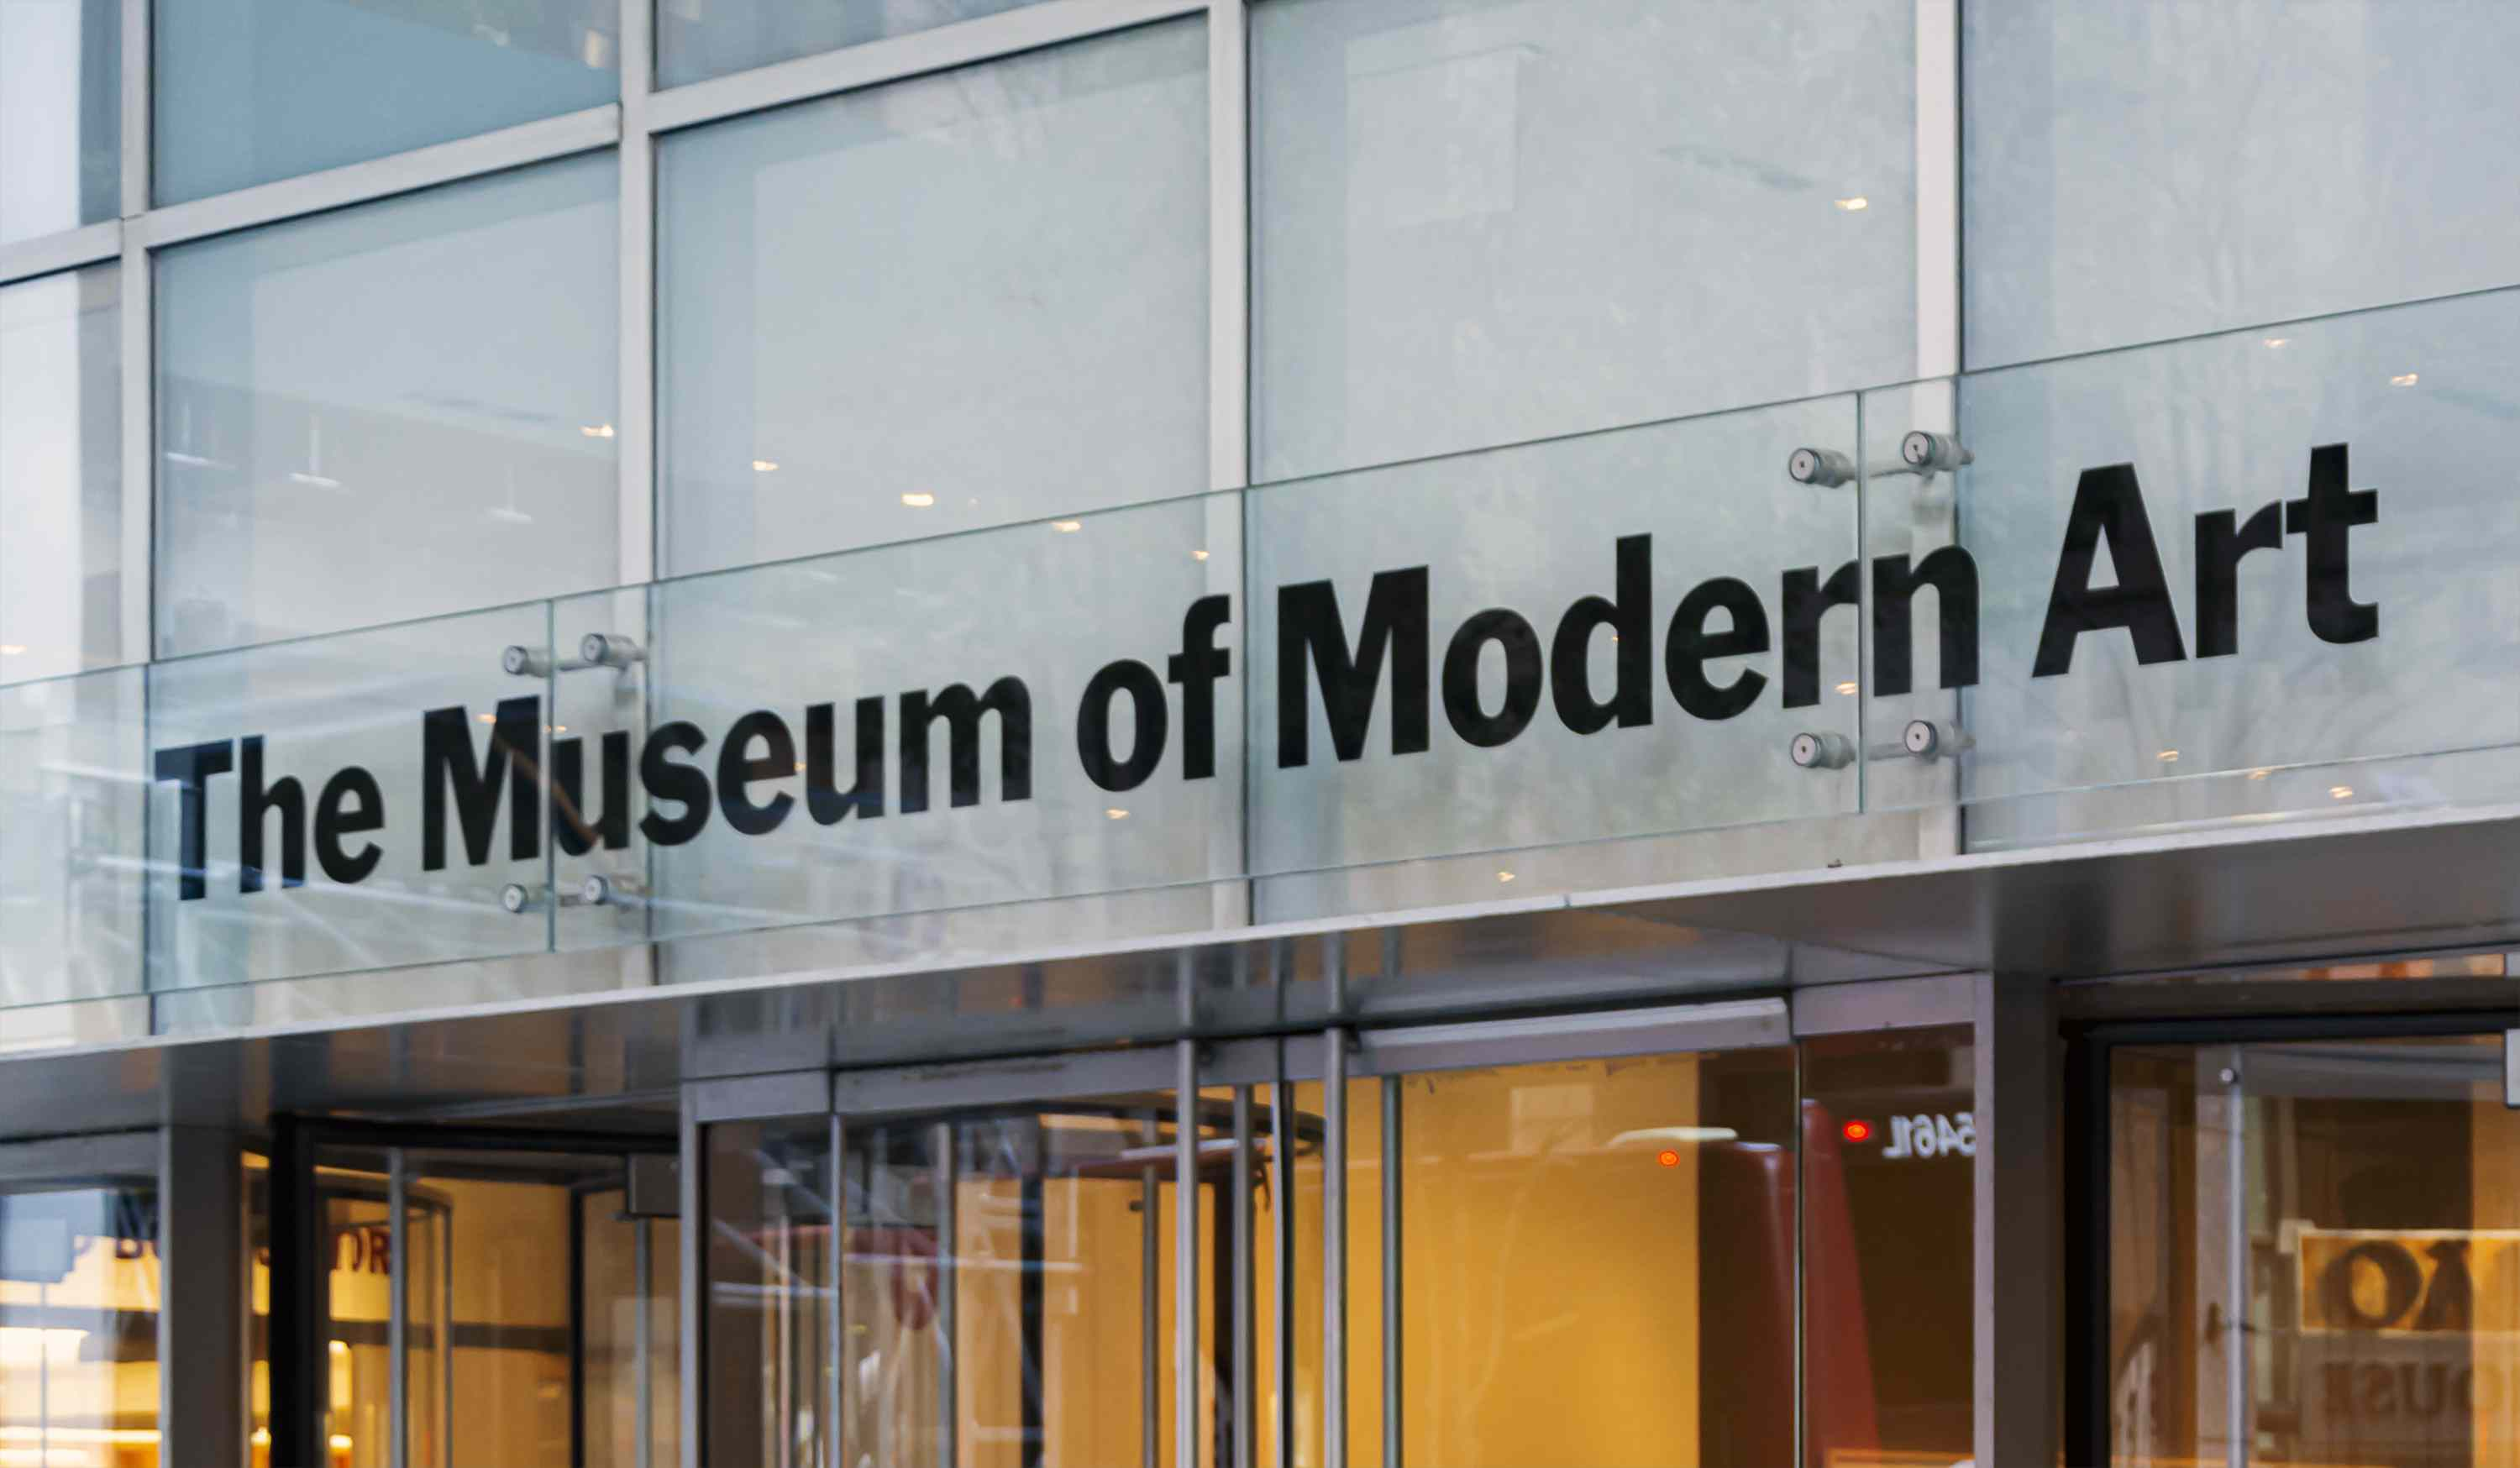 Main entrance of the Museum of Modern Art